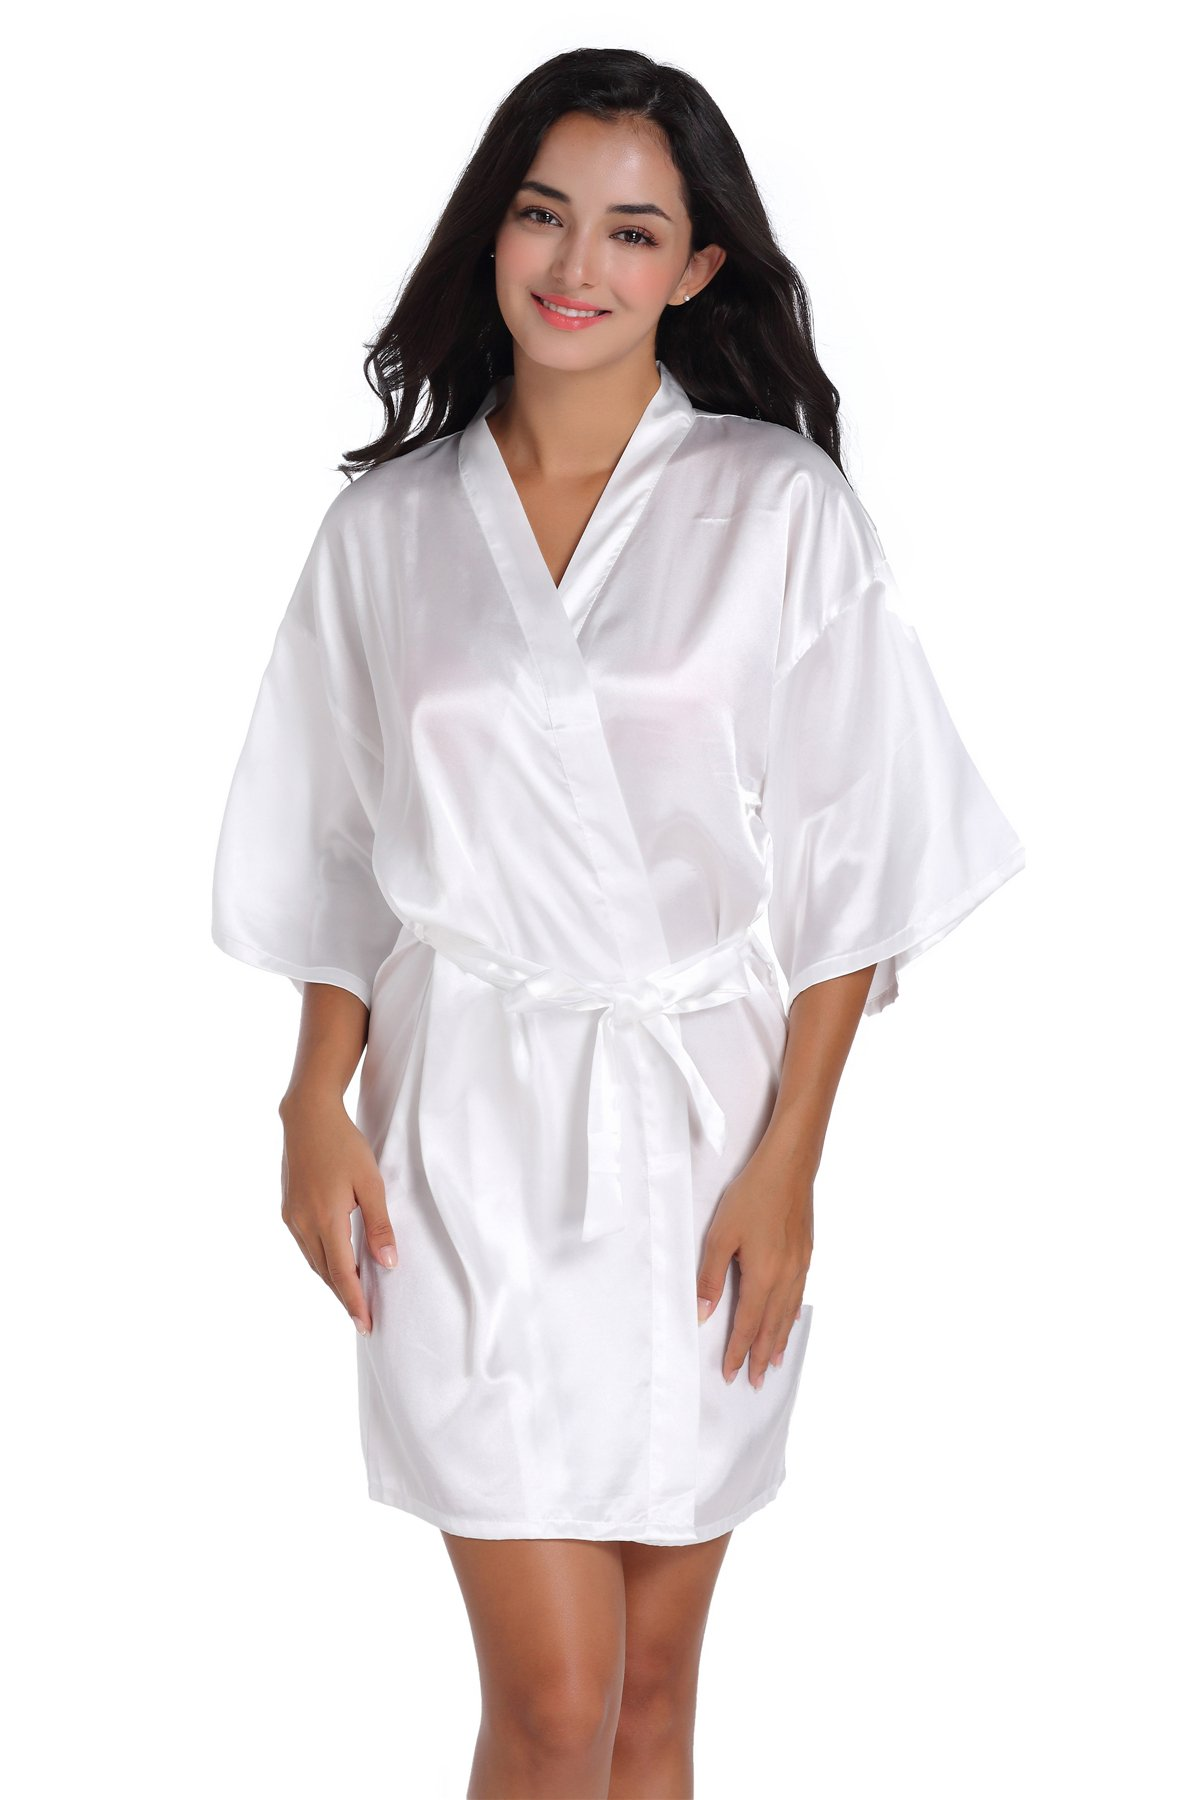 SIMJOY Women\'s Satin Short Kimono Robe Plain Dressing Gown Bathrobe ...